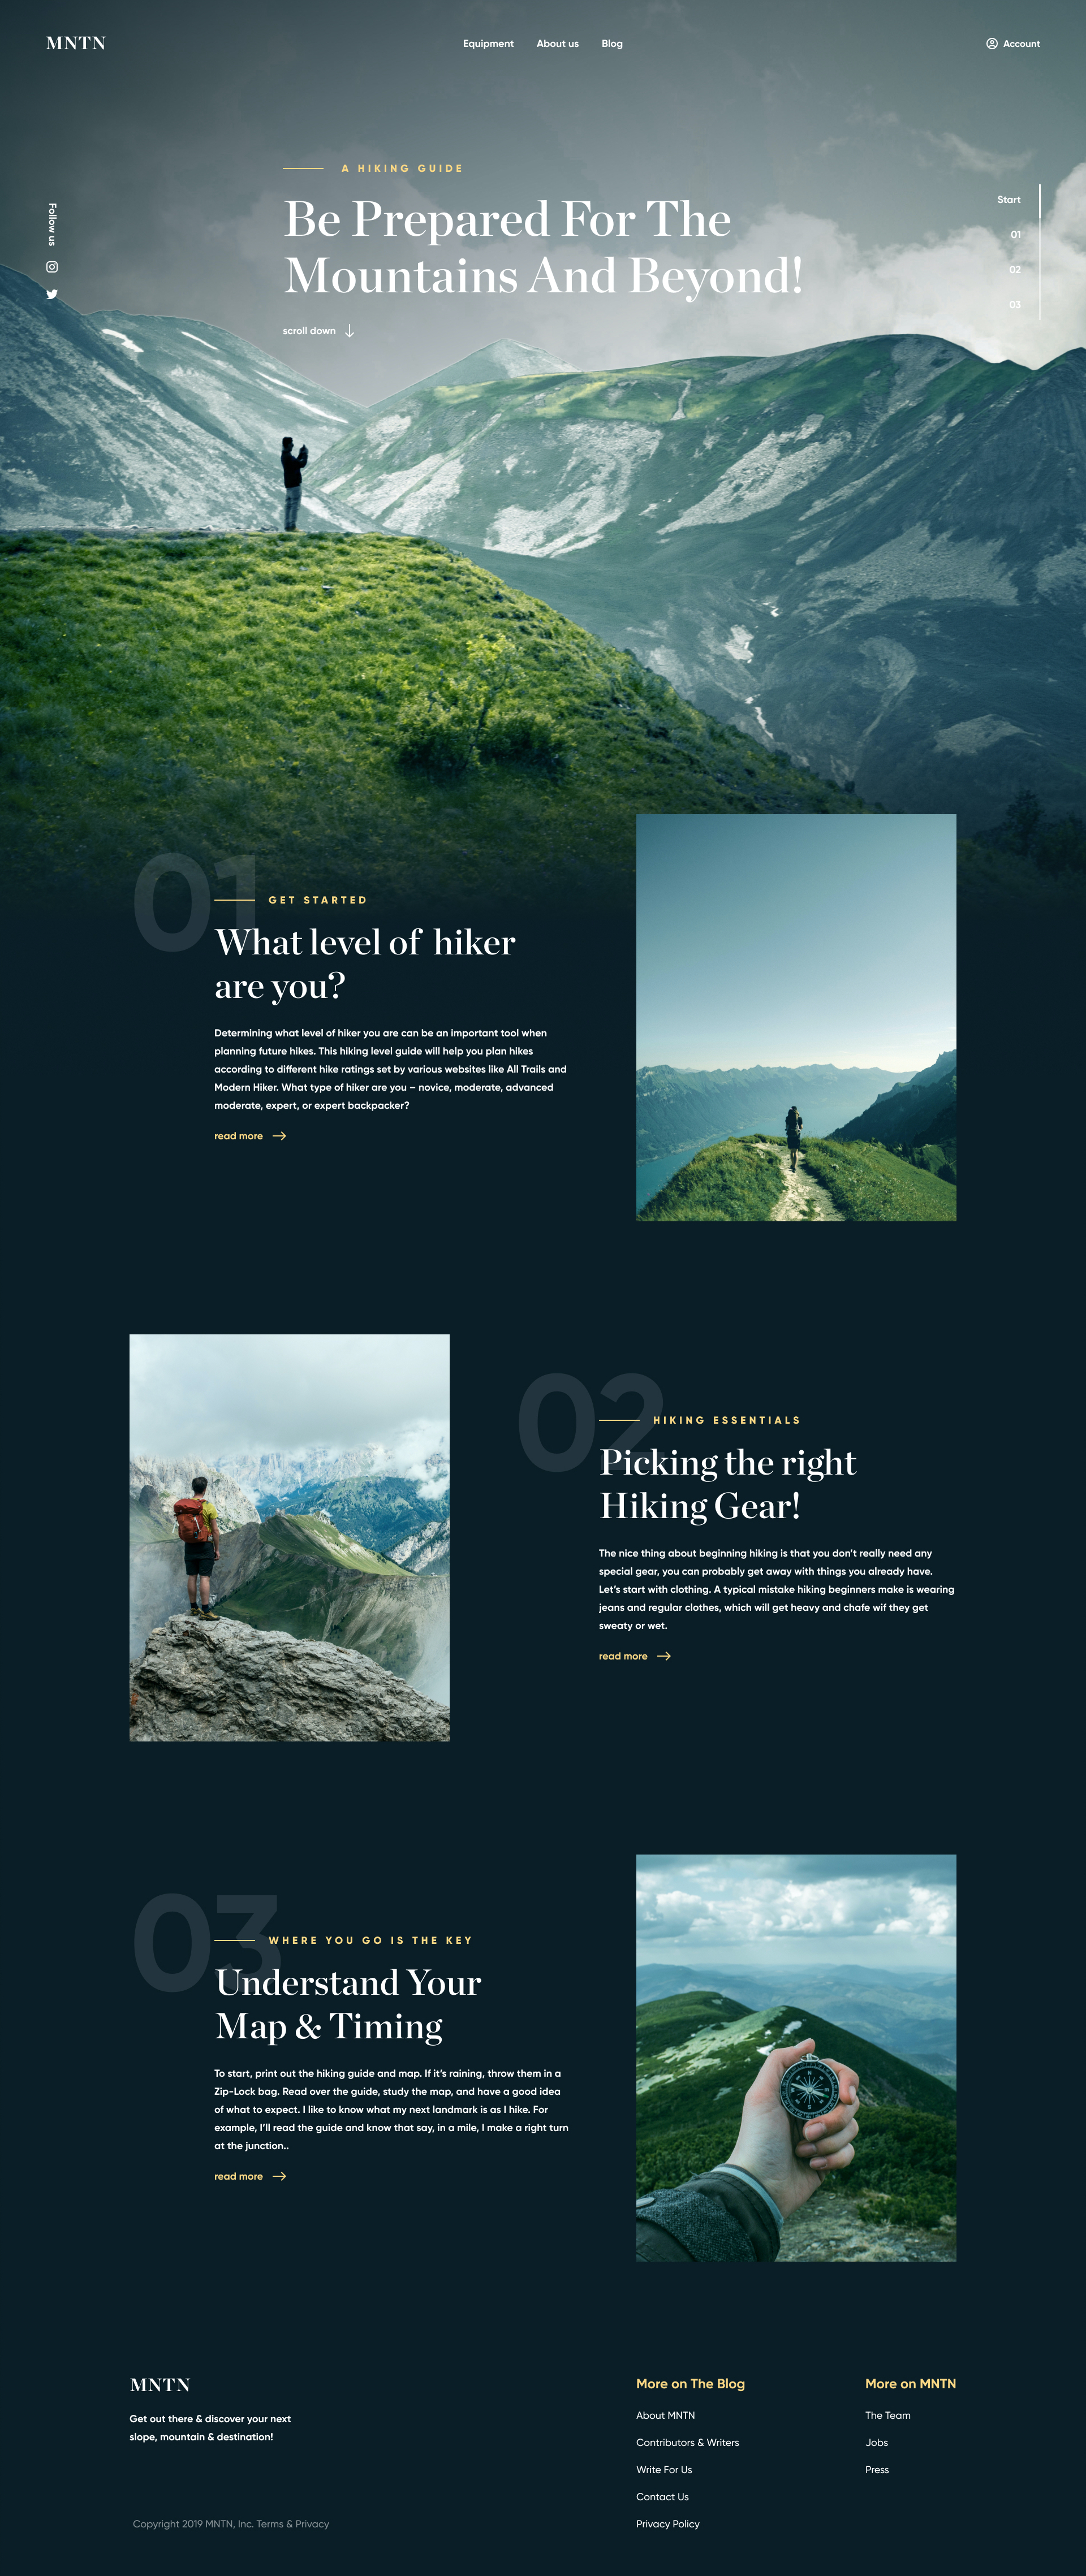 MNTN Free Landing Page - Minimal and clean landing page design for a blog about hiking and traveling.